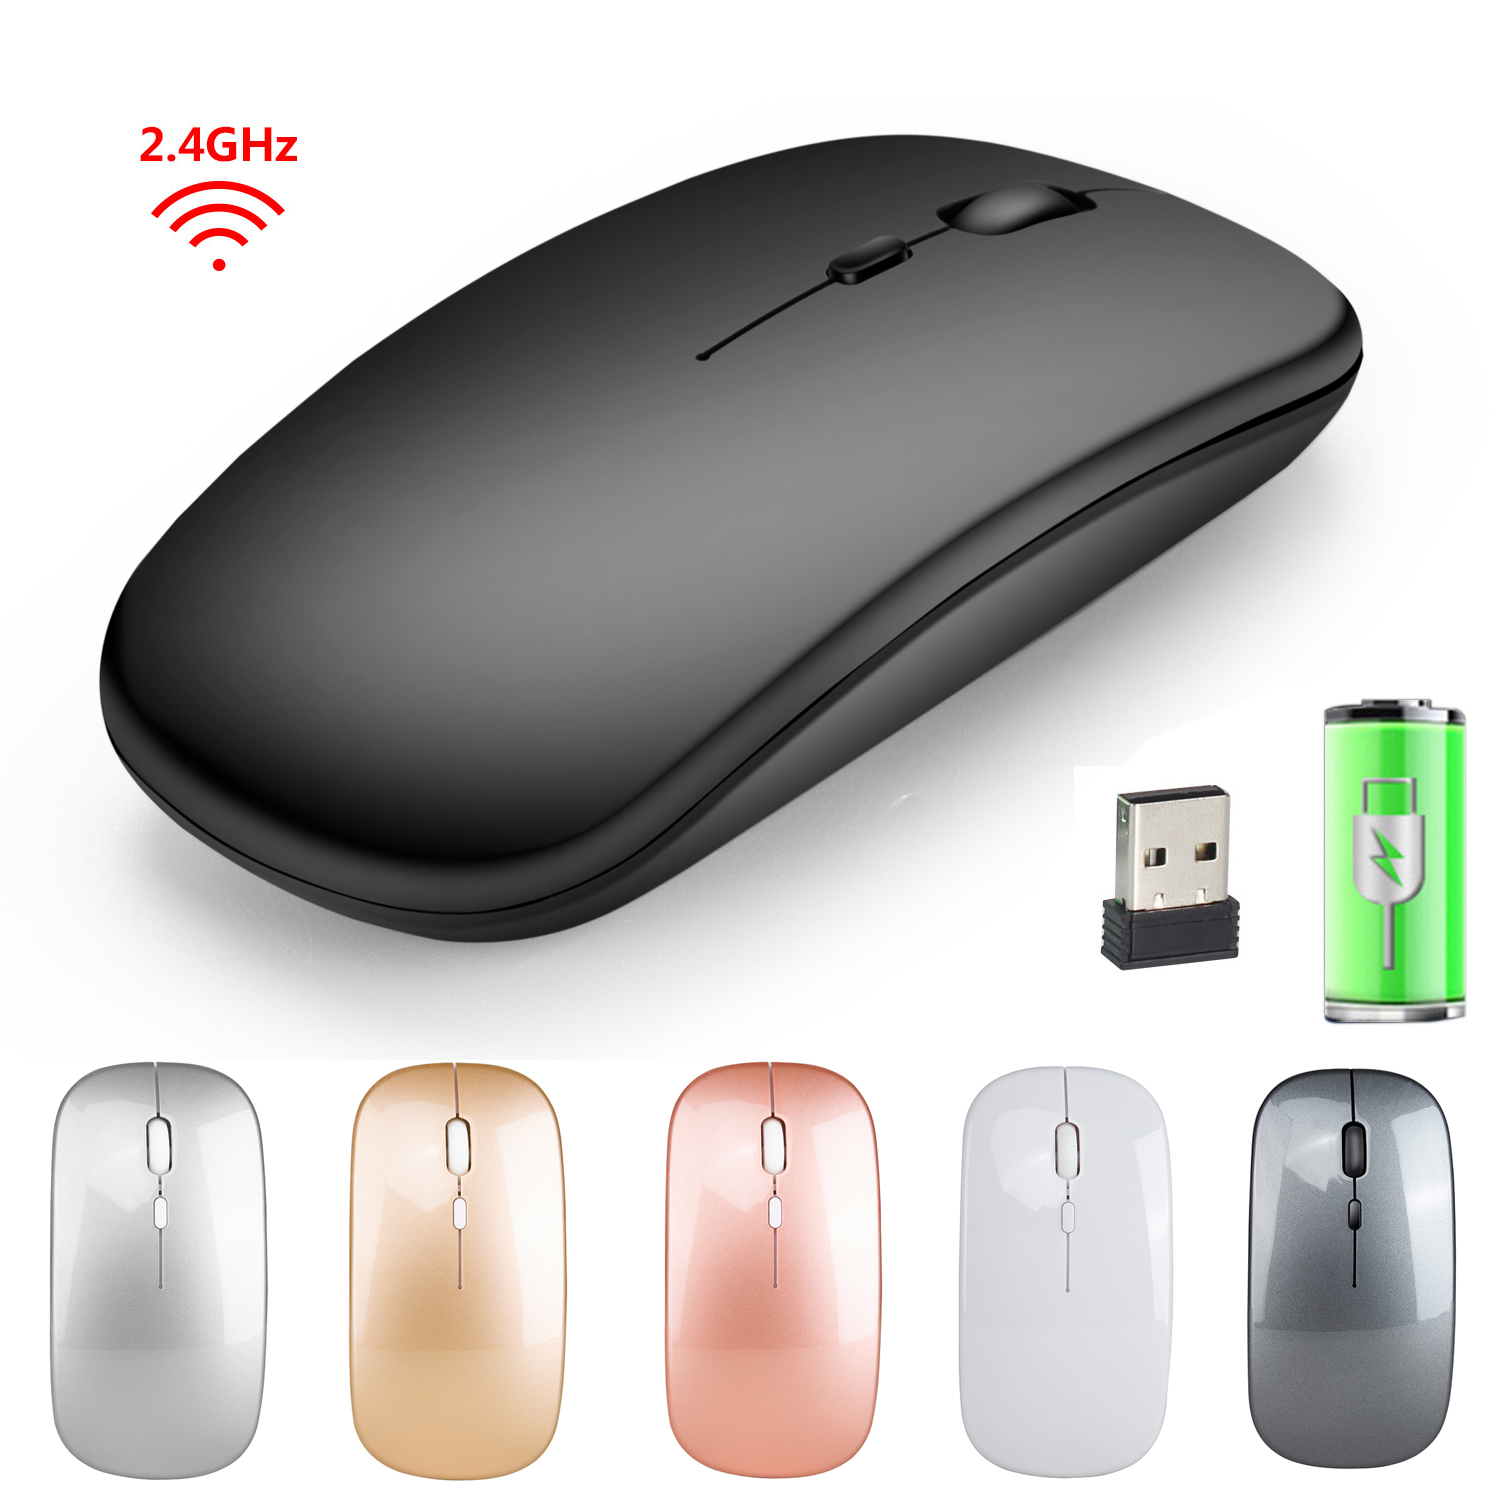 M80 Quiet Wireless Mouse Rechargeable Ergonomics Silent Design 1600DPI Optical Mouse Office For MAC PC Laptop